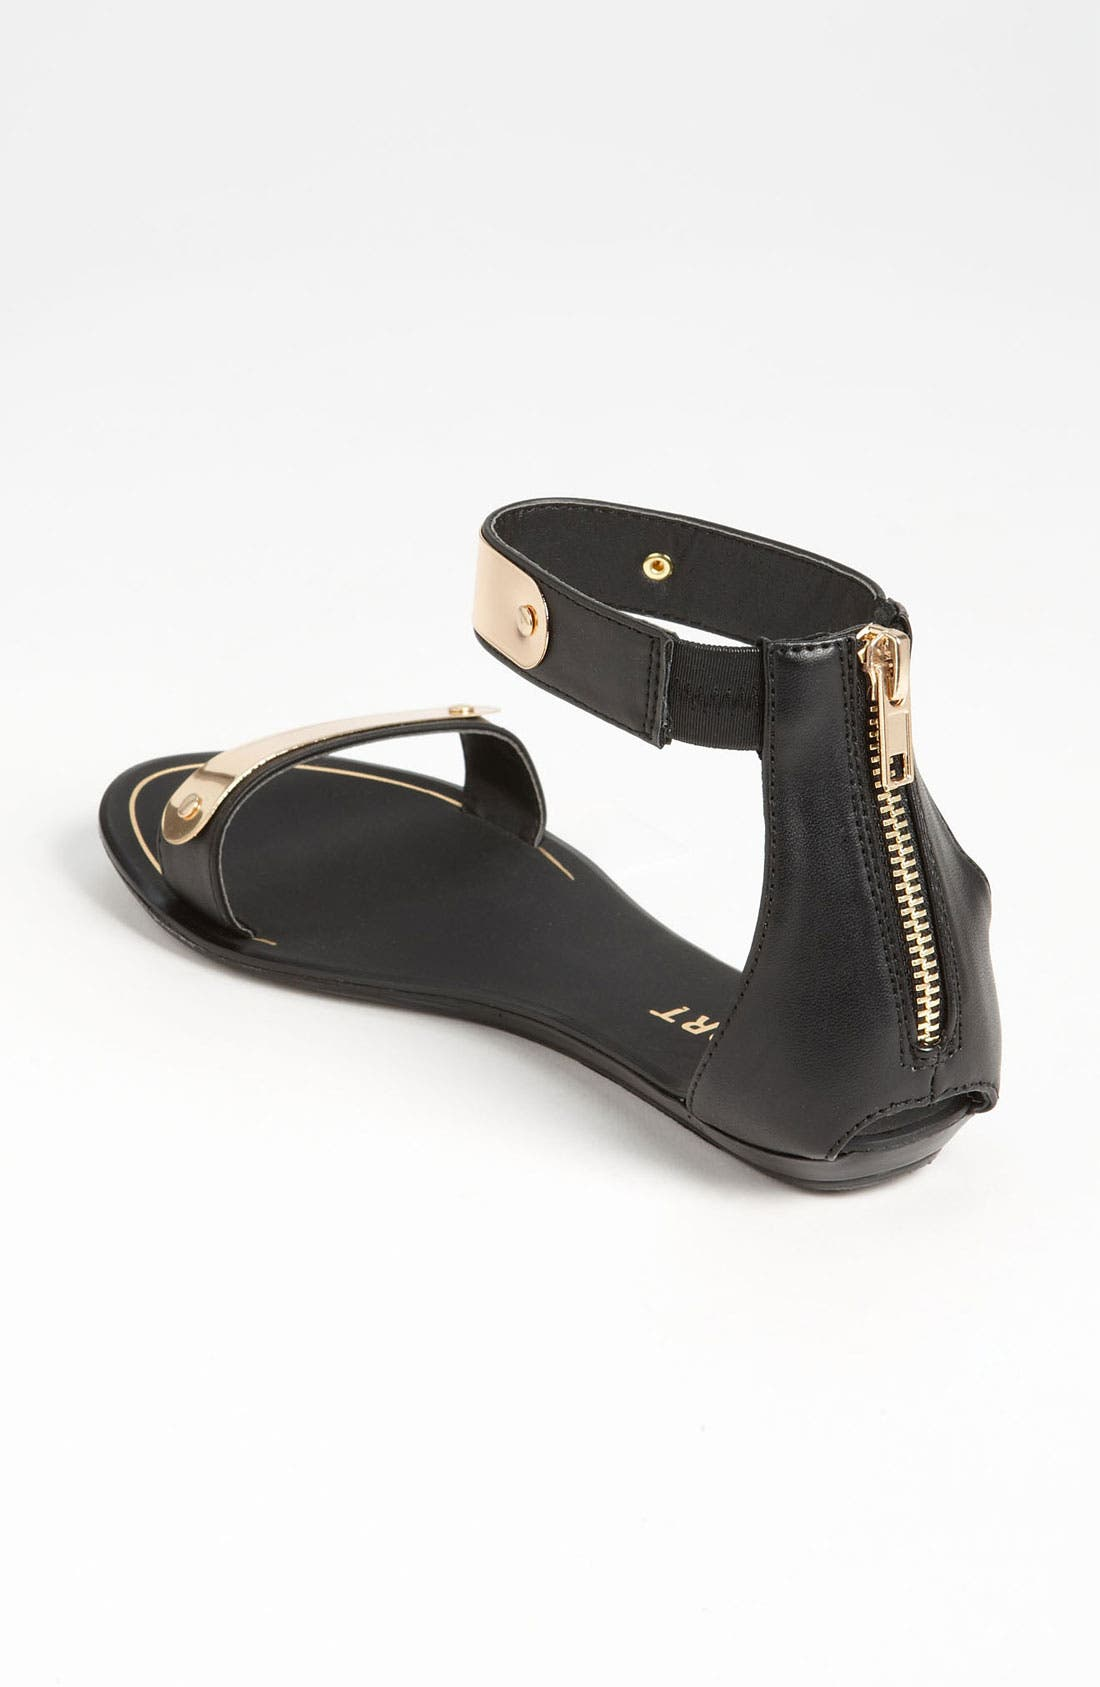 REPORT SIGNATURE, REPORT Metal Bar Sandal, Alternate thumbnail 3, color, 001